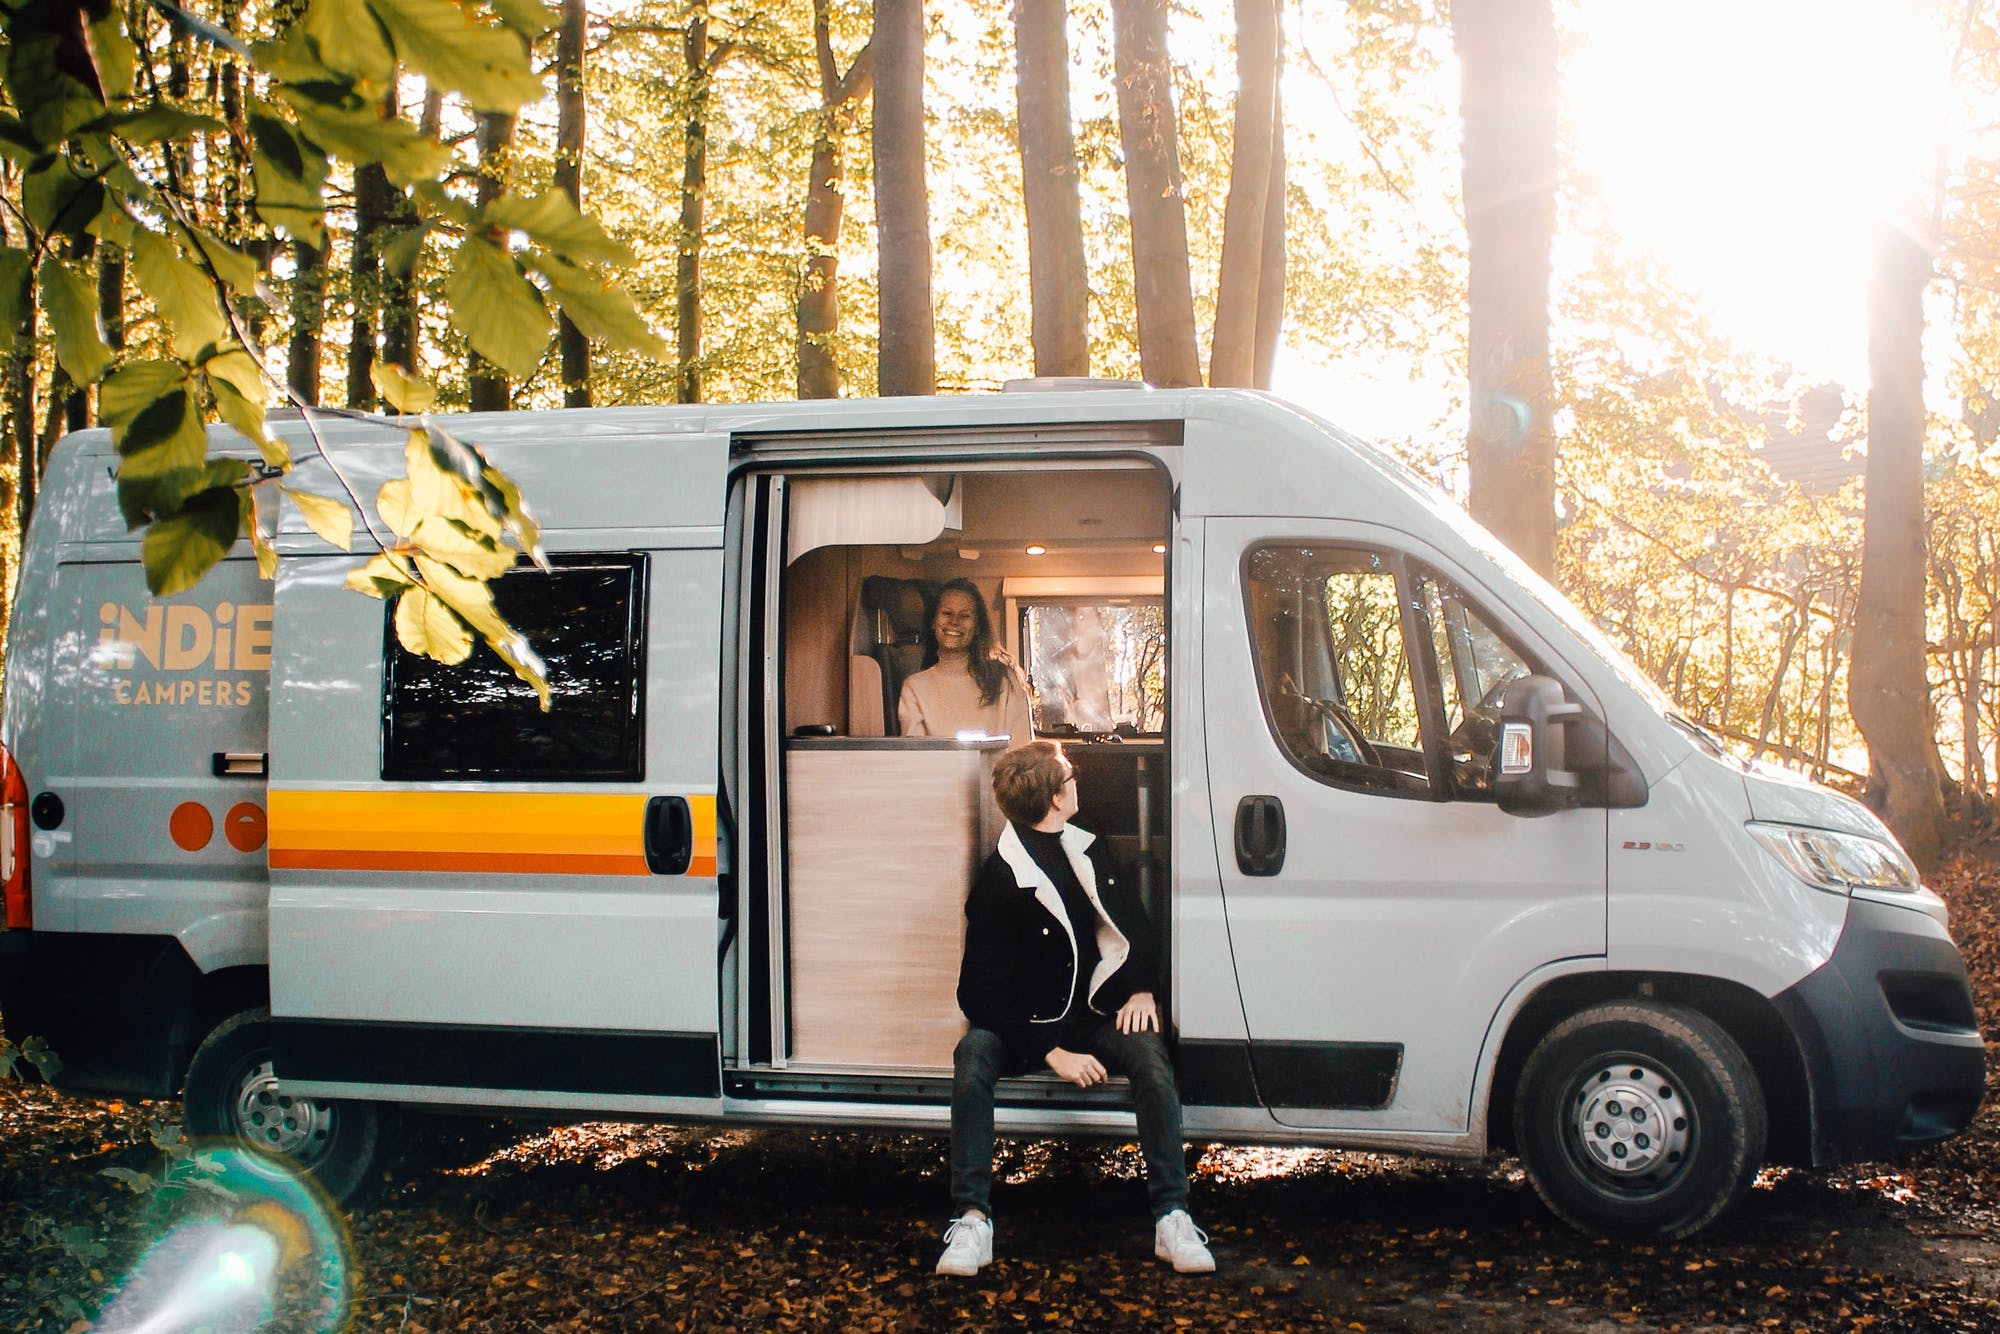 A couple enjoying living in a camper van, sitting with the door open in the woods.